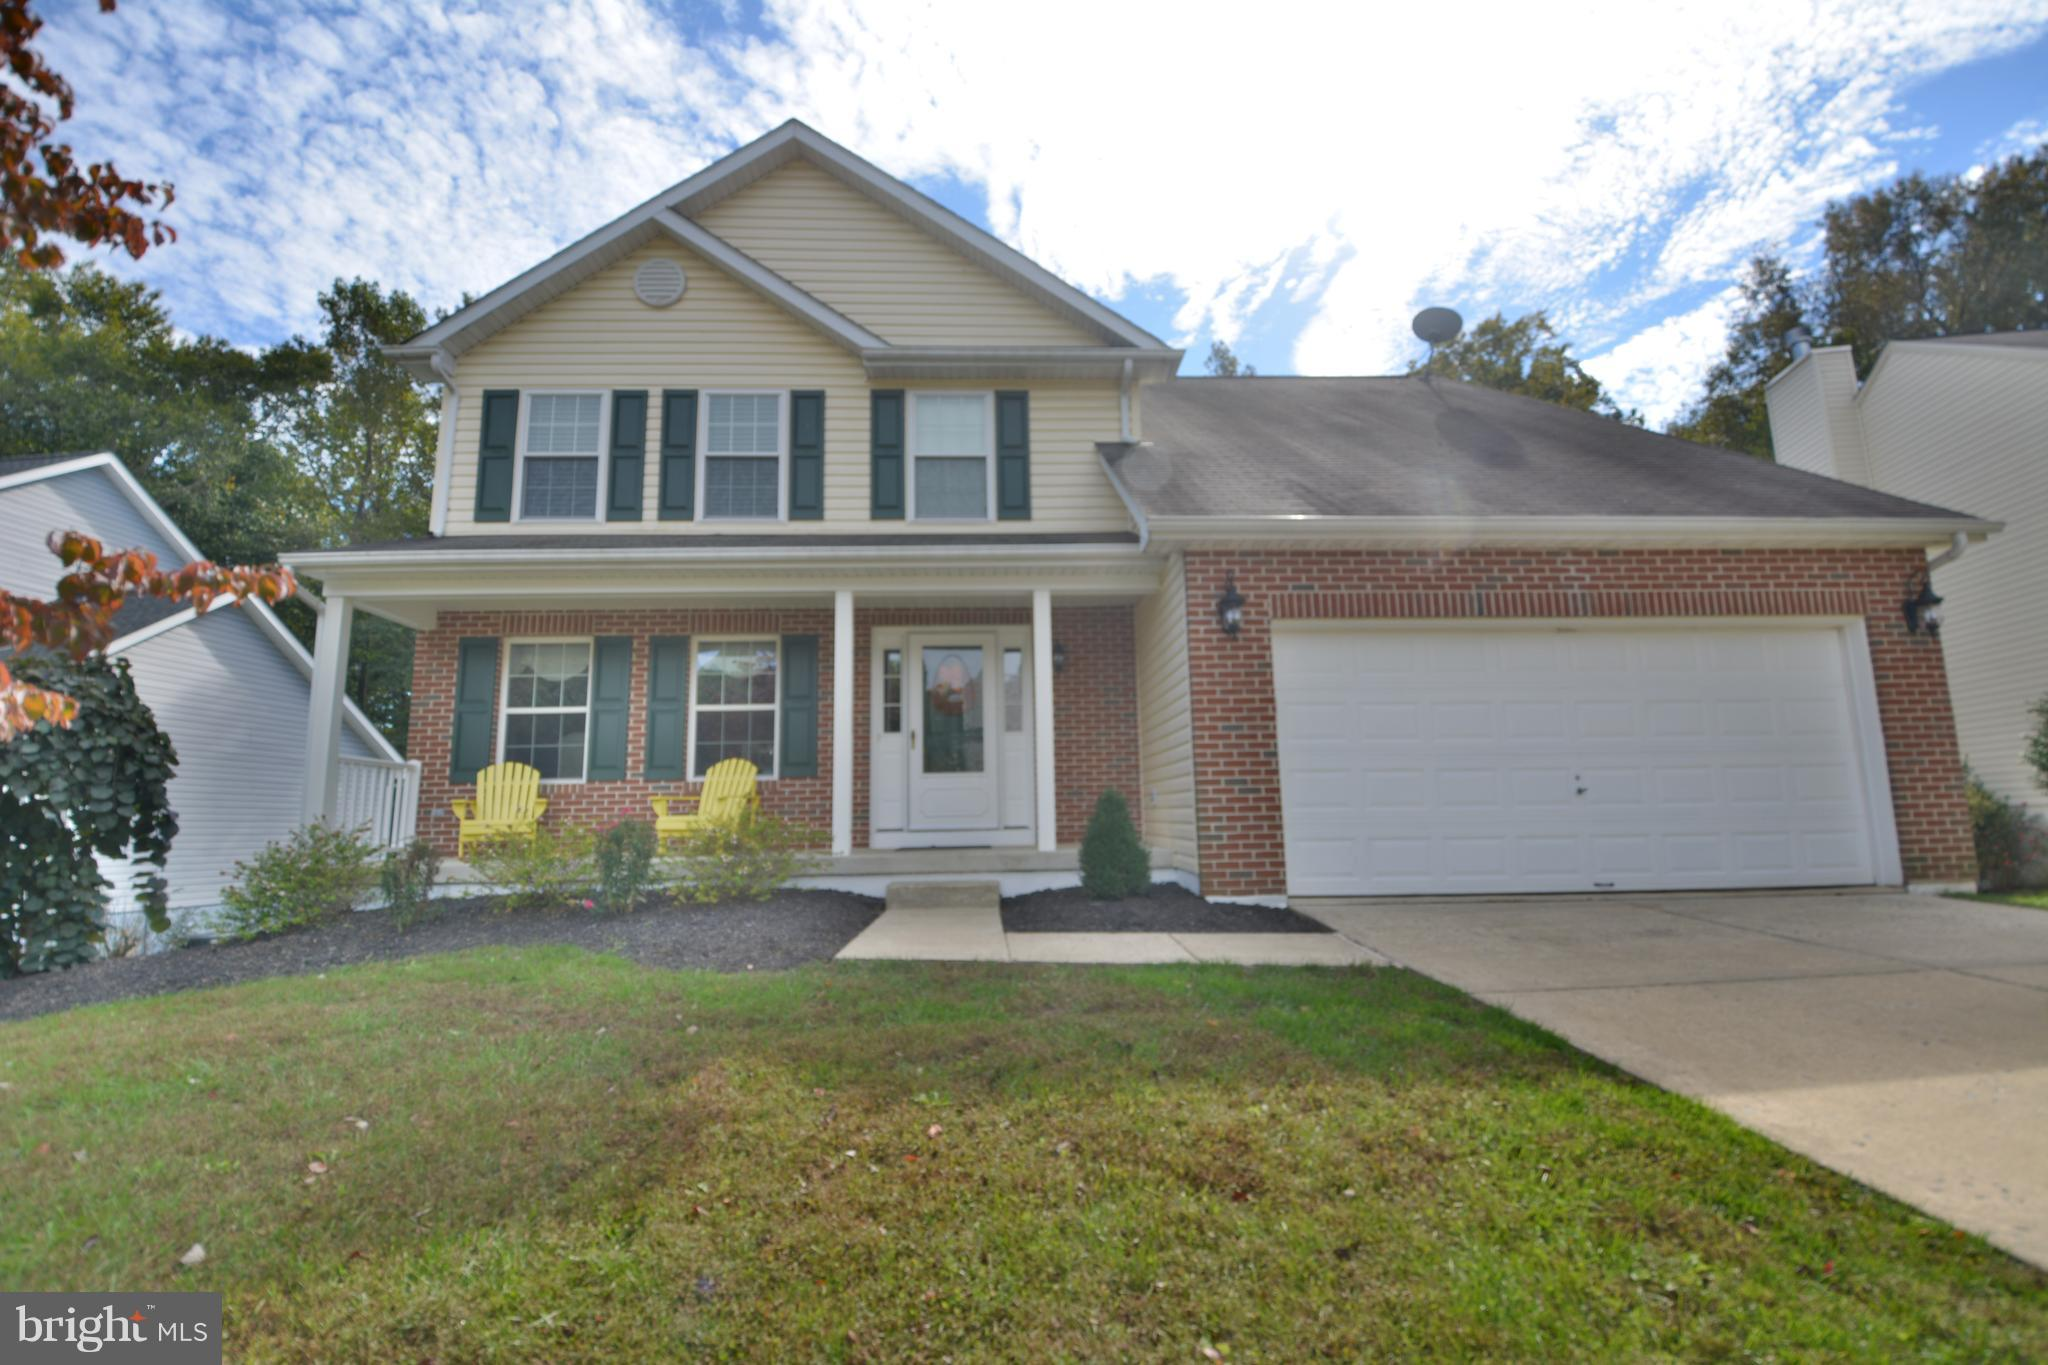 STUNNING. UPDATED. METICULOUSLY MAINTAINED 4 BEDROOM 3.5 BATH COLONIAL IN VILLAGE BYNUM RUN. MAIN LE